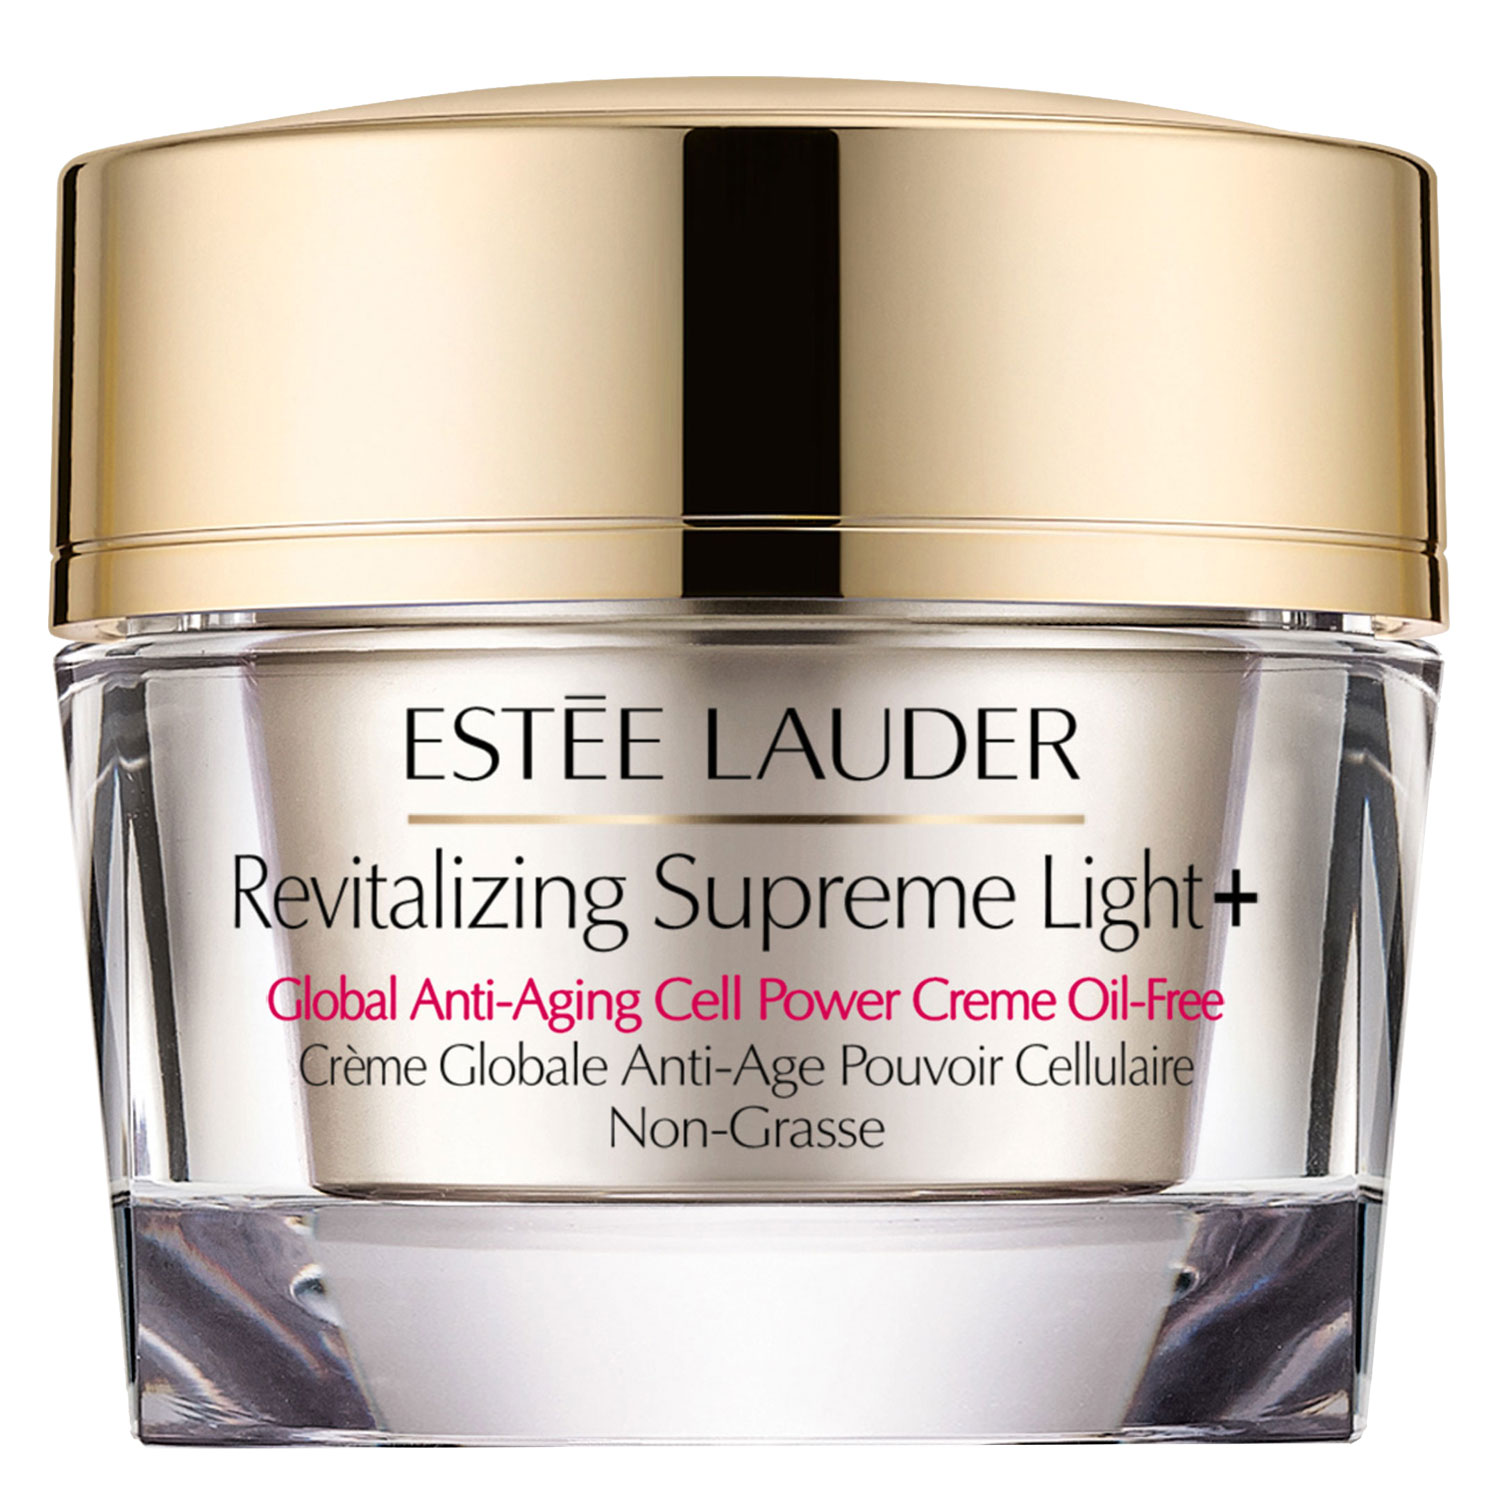 Revitalizing Supreme - Light Global Anti-Aging Cell Power Creme Oil Free